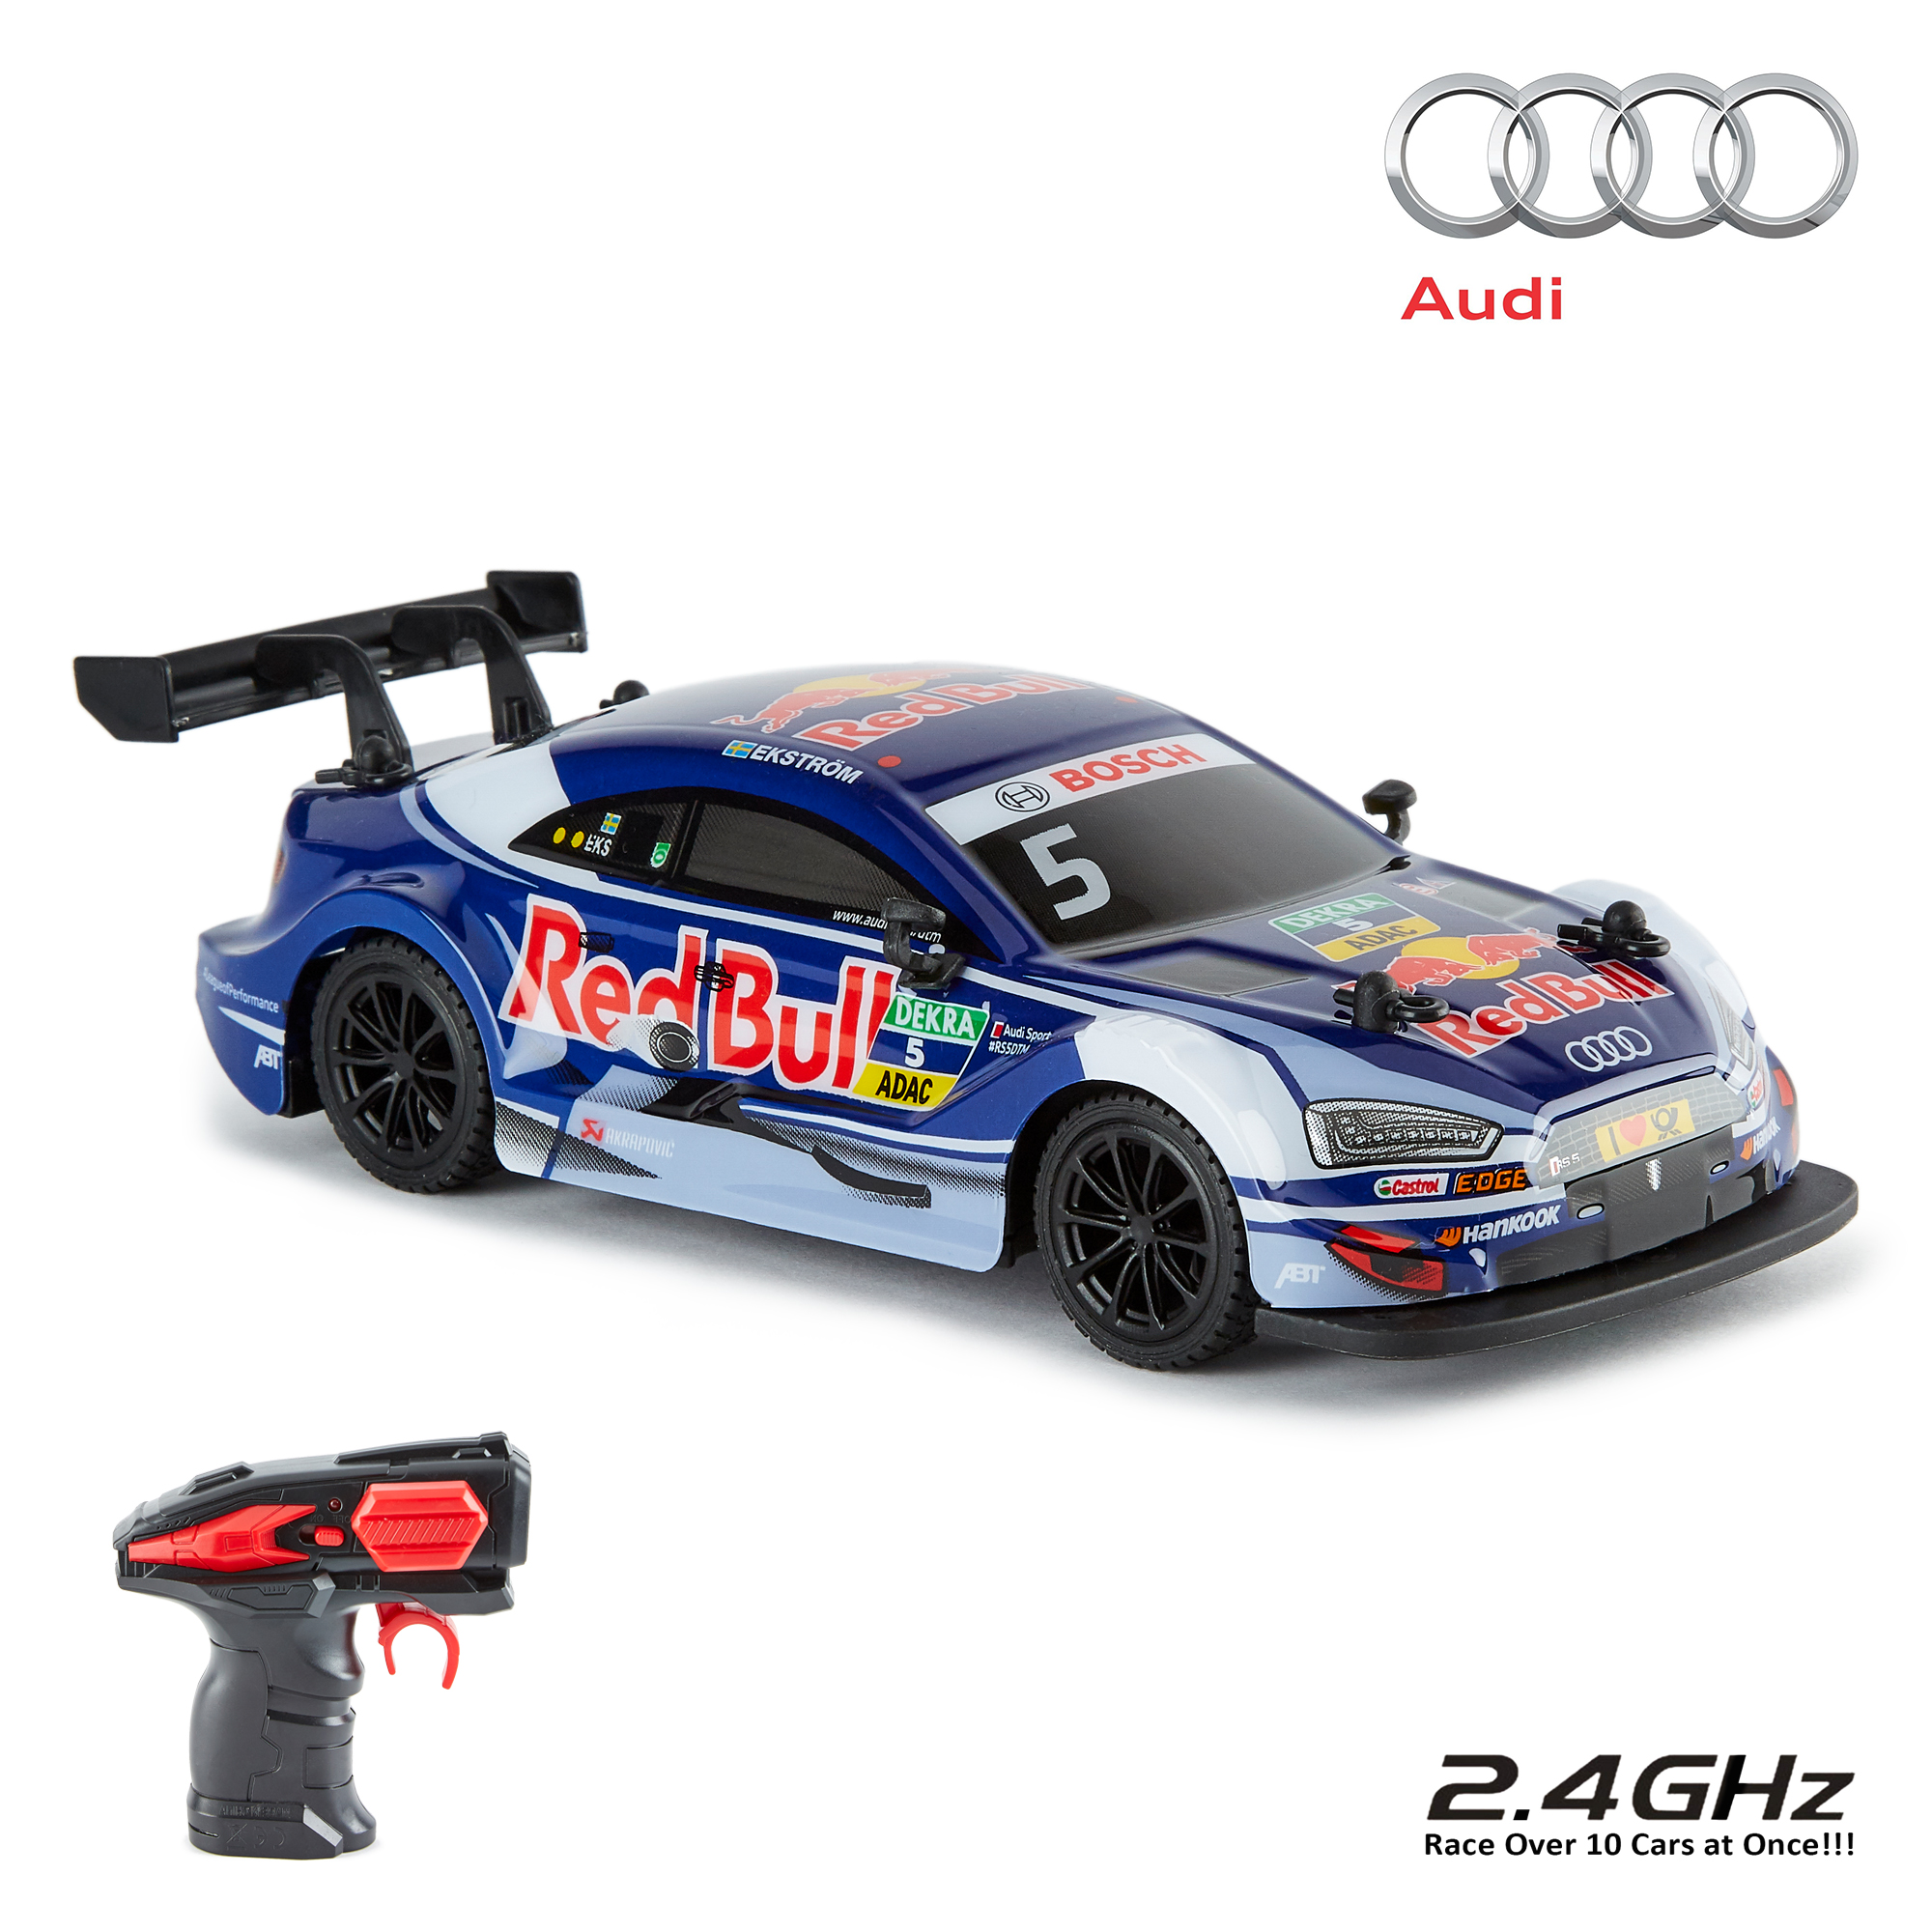 Details zu CMJ Remote Control 11:11 11.11Ghz Official Licensed Audi RS11 DTM RC  Car - Red Bull | audi rc cars